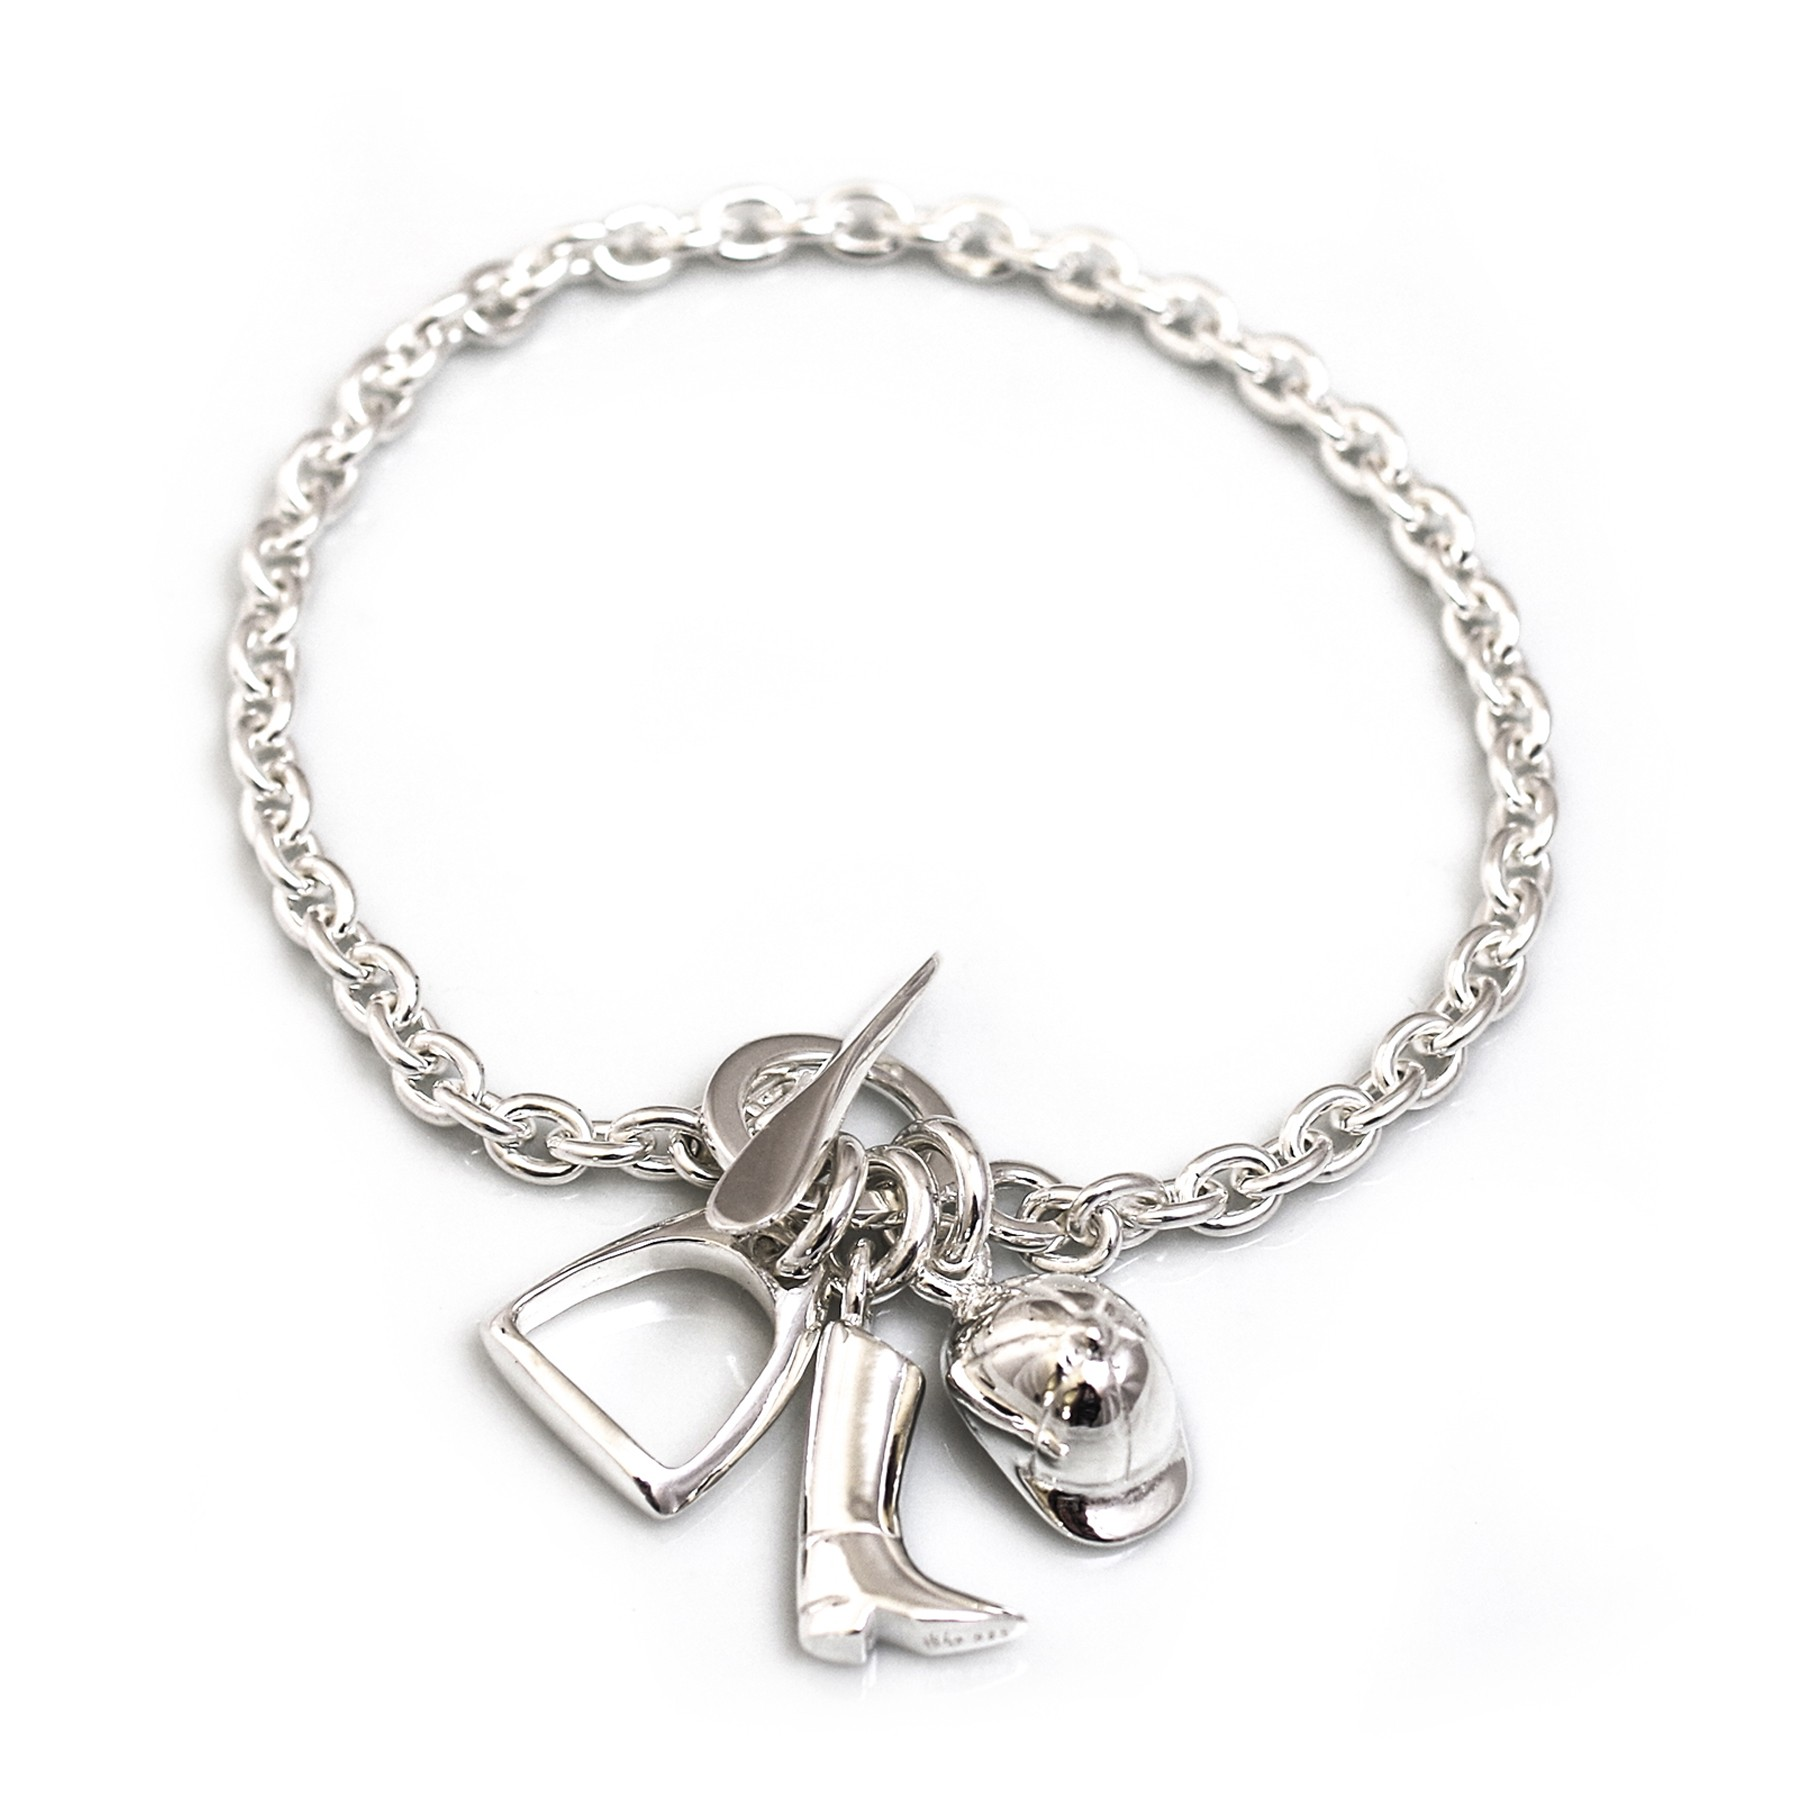 9976bb8af Sterling Silver Fob Bracelet with Equestrian Charms. cob0033. Jewellery ...